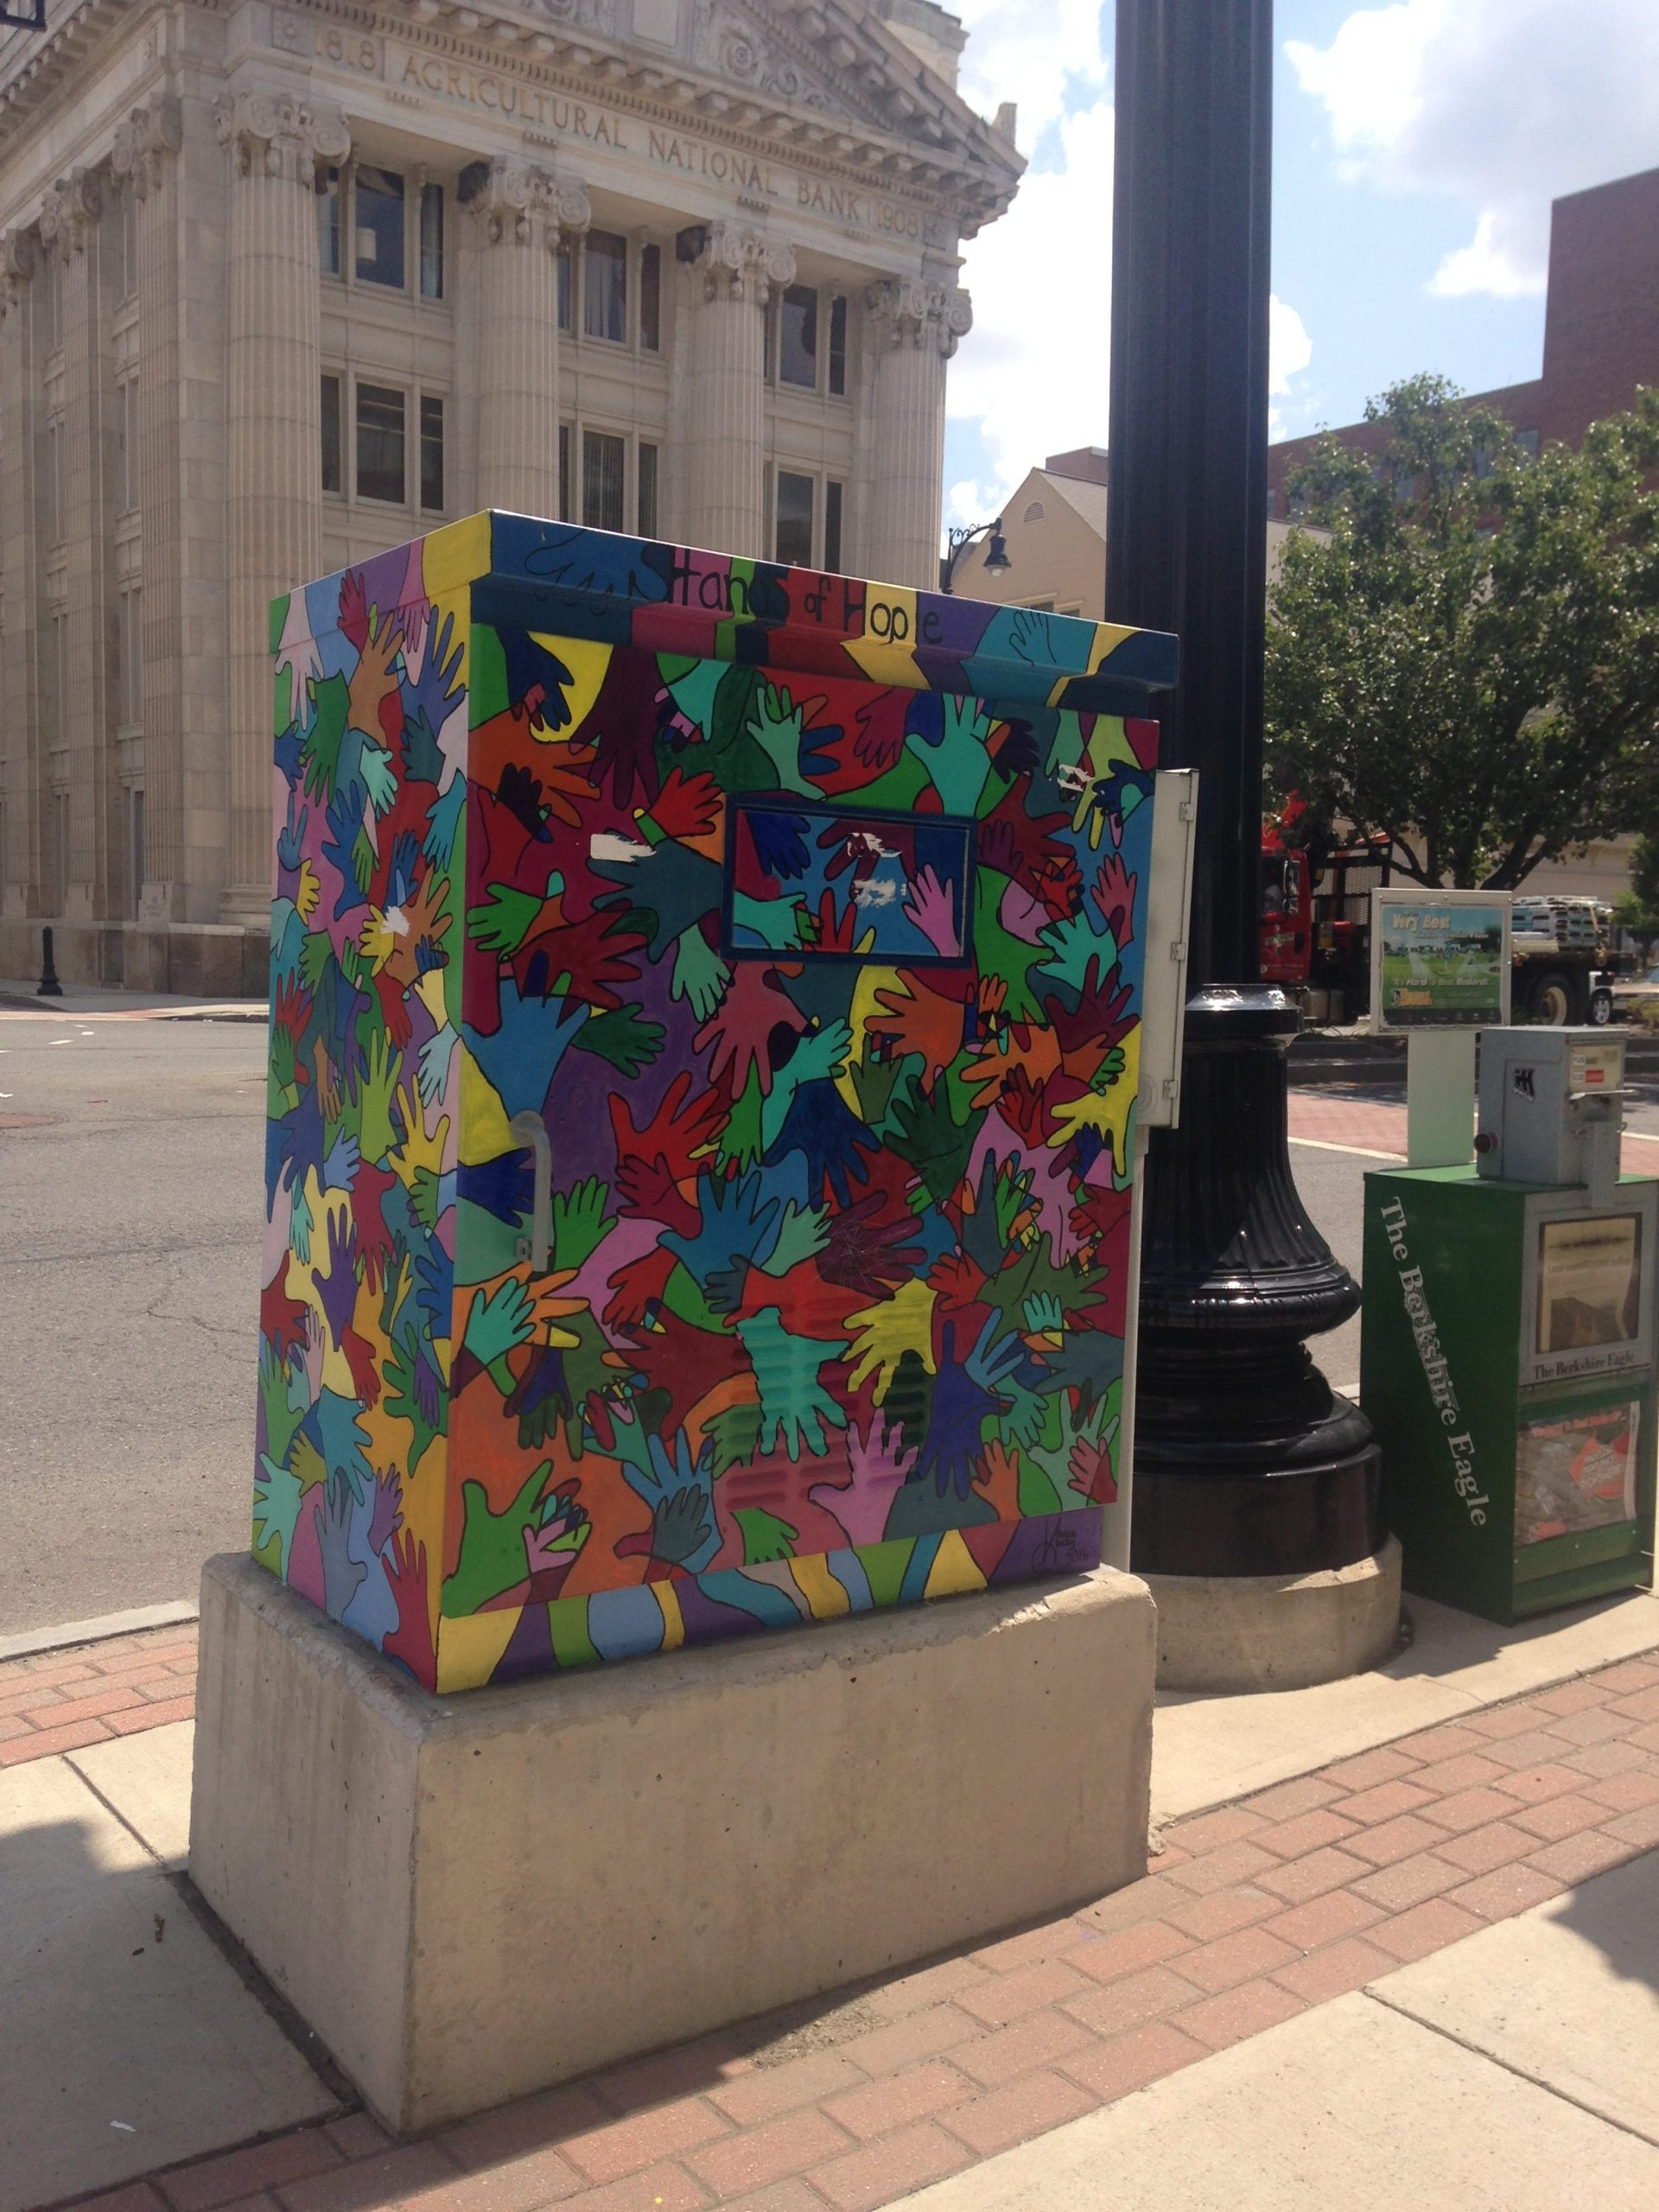 Art in Pittsfield, Massachusetts: A utility box on a sidewalk is covered with interlocking hands in all the colors of the rainbow.